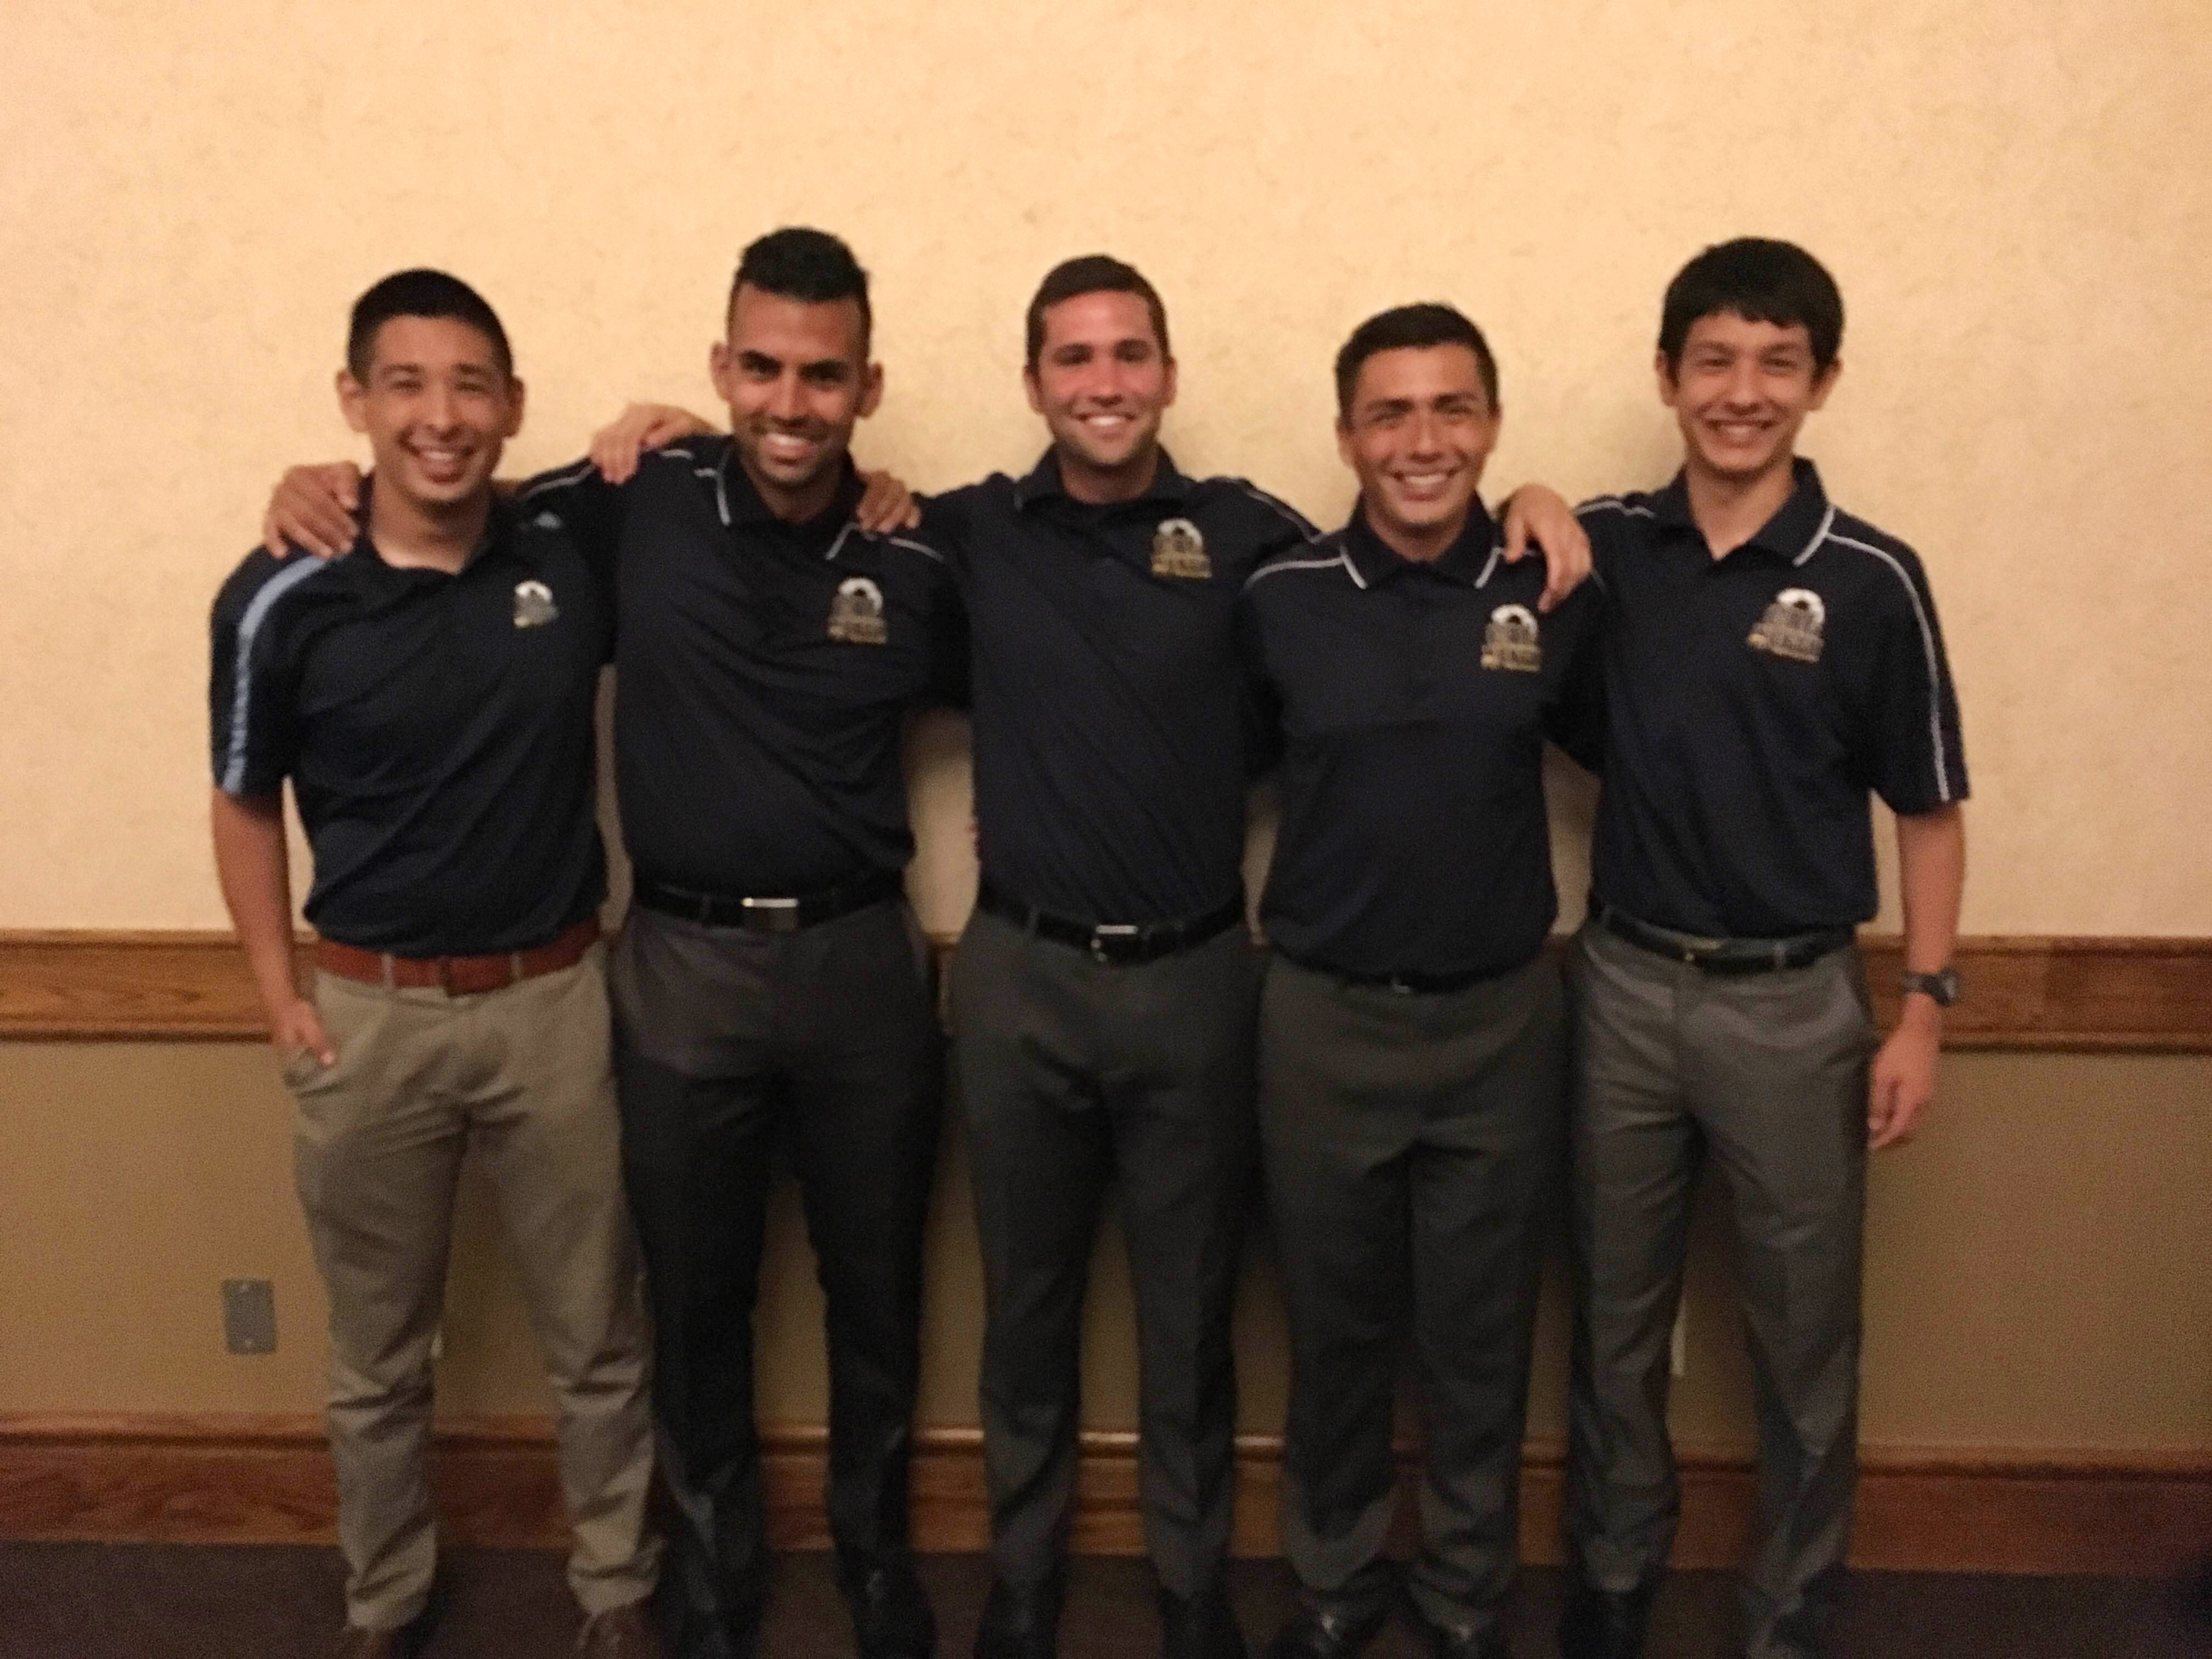 California North Referees (from left to right in the photo): Matt Lanthier, Omeed Azadpour, Mike Welch, Eduardo Zavala, and Michael Lanthier.